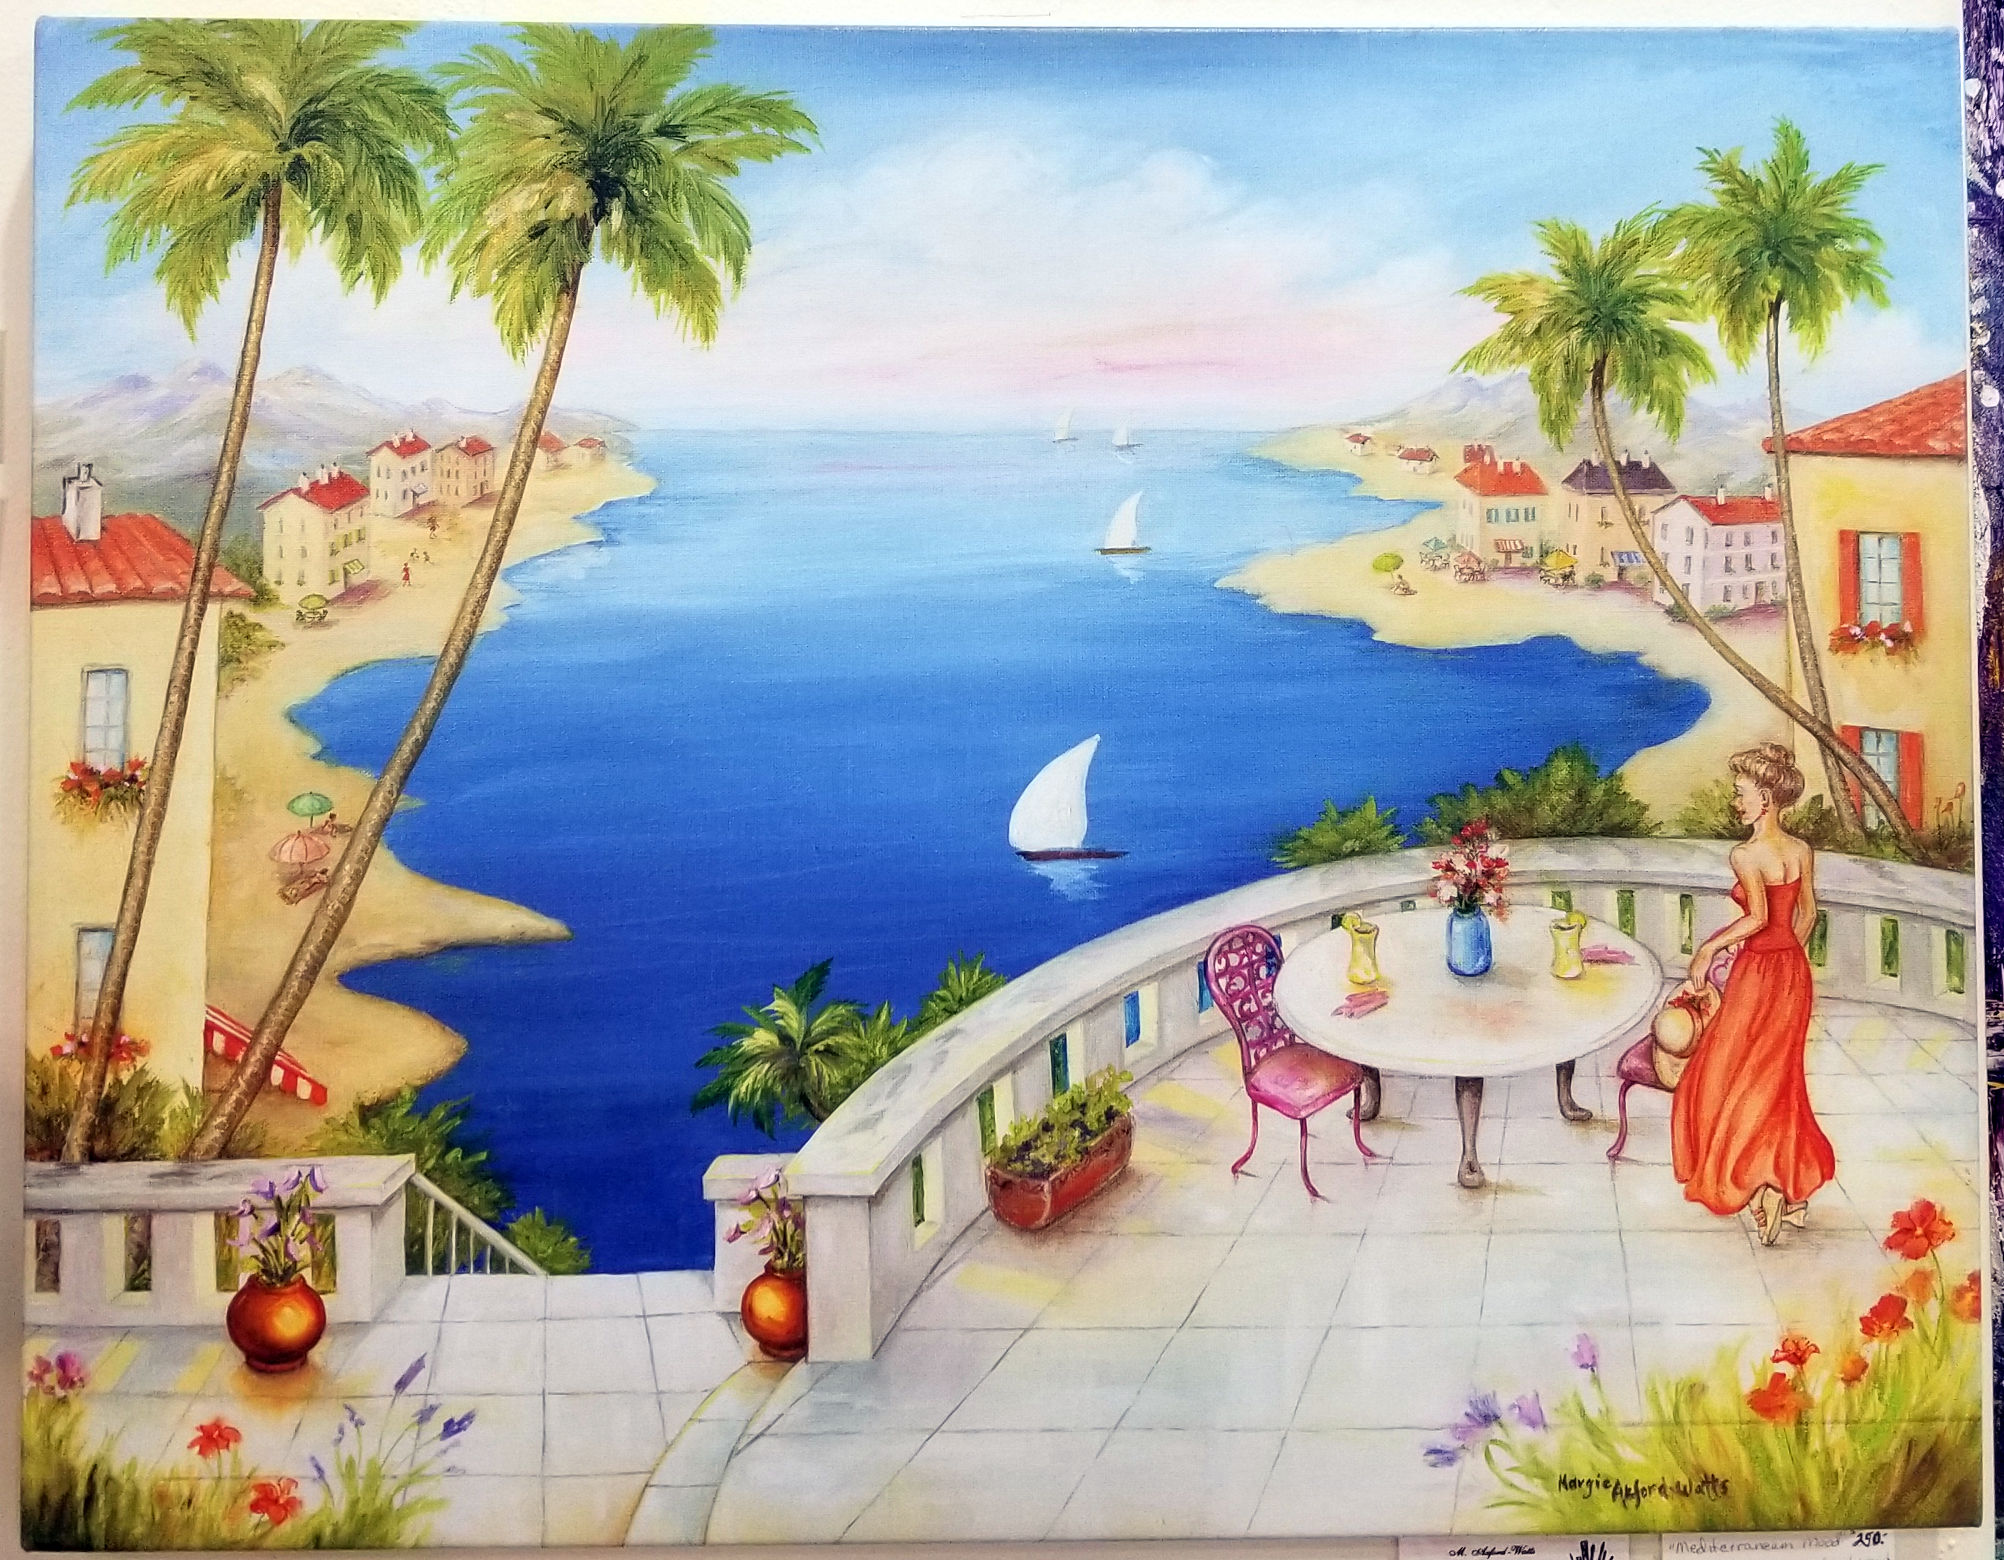 Mediterranean Mood, by Margie Axford-Watts